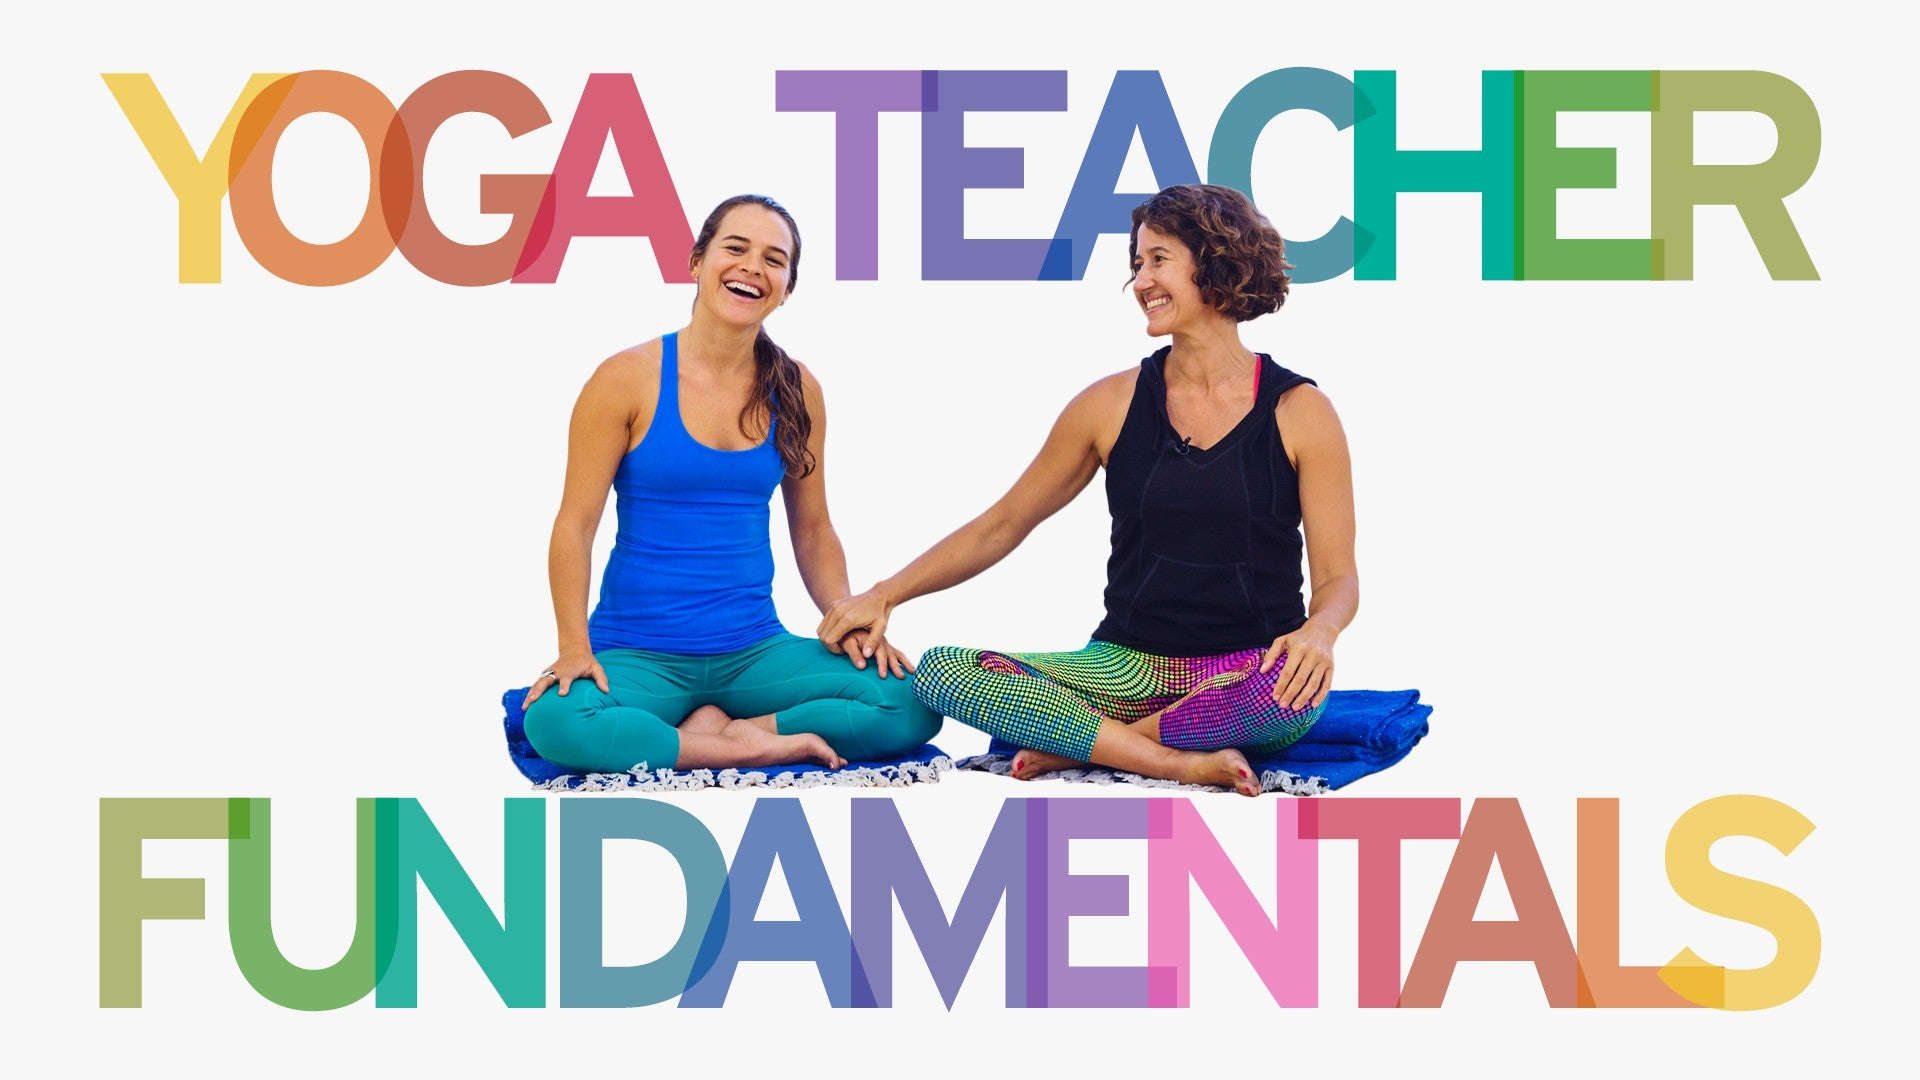 Yoga Teacher Fundamentals Artwork